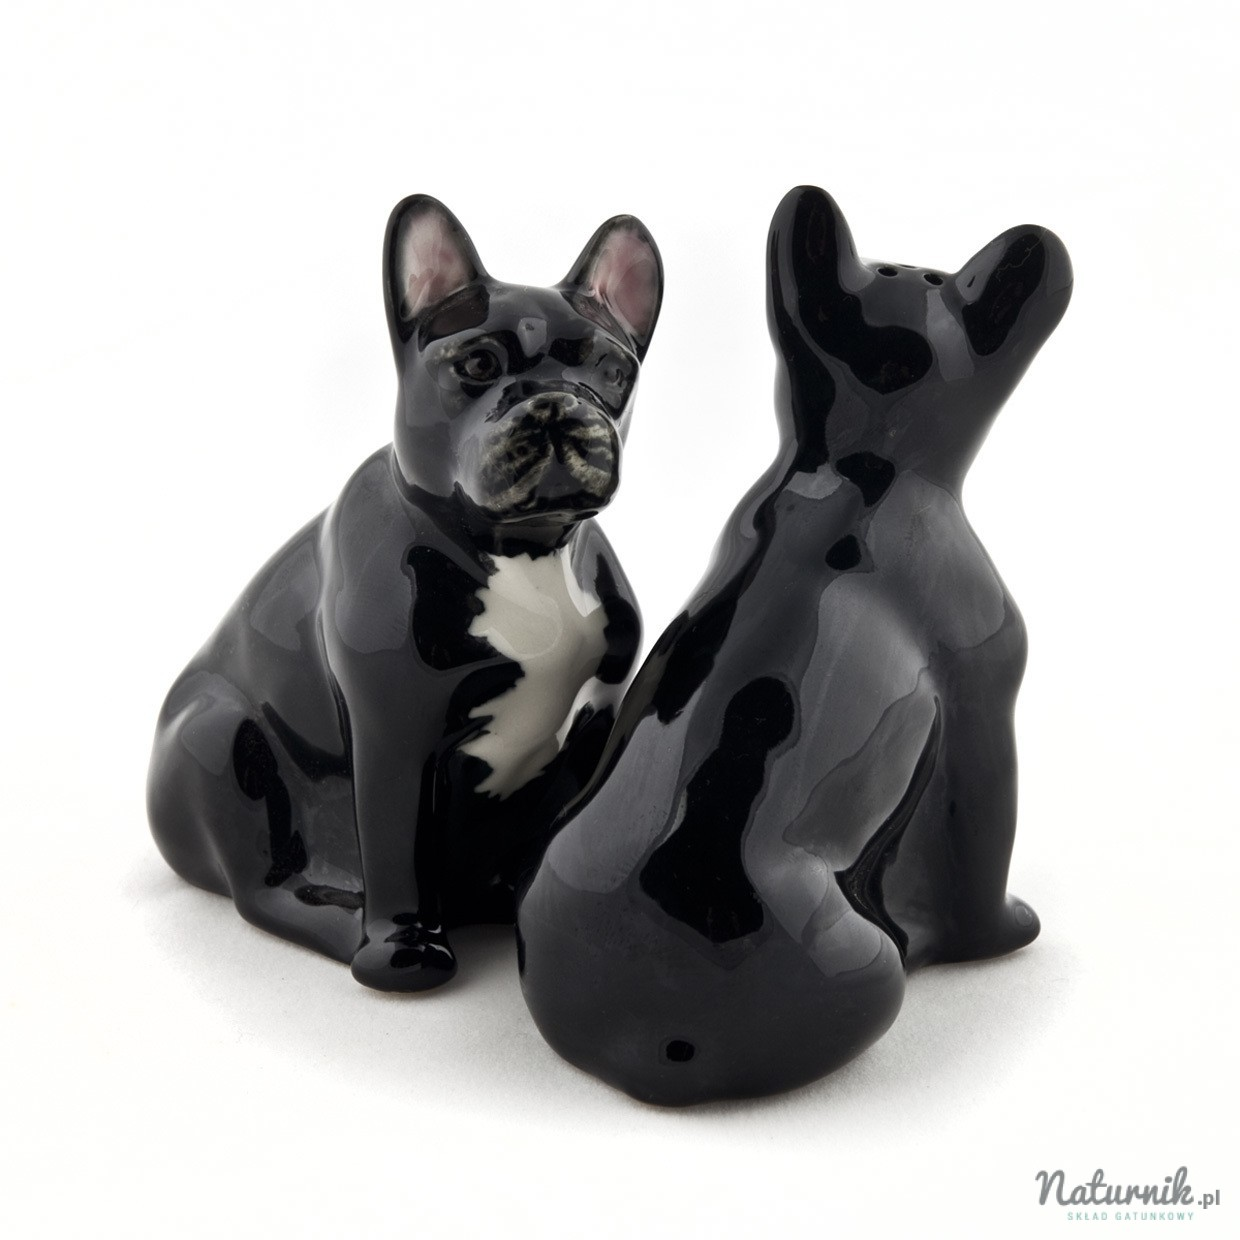 french_bulldog_black_sp_02__22105-1458750545-1280-1280